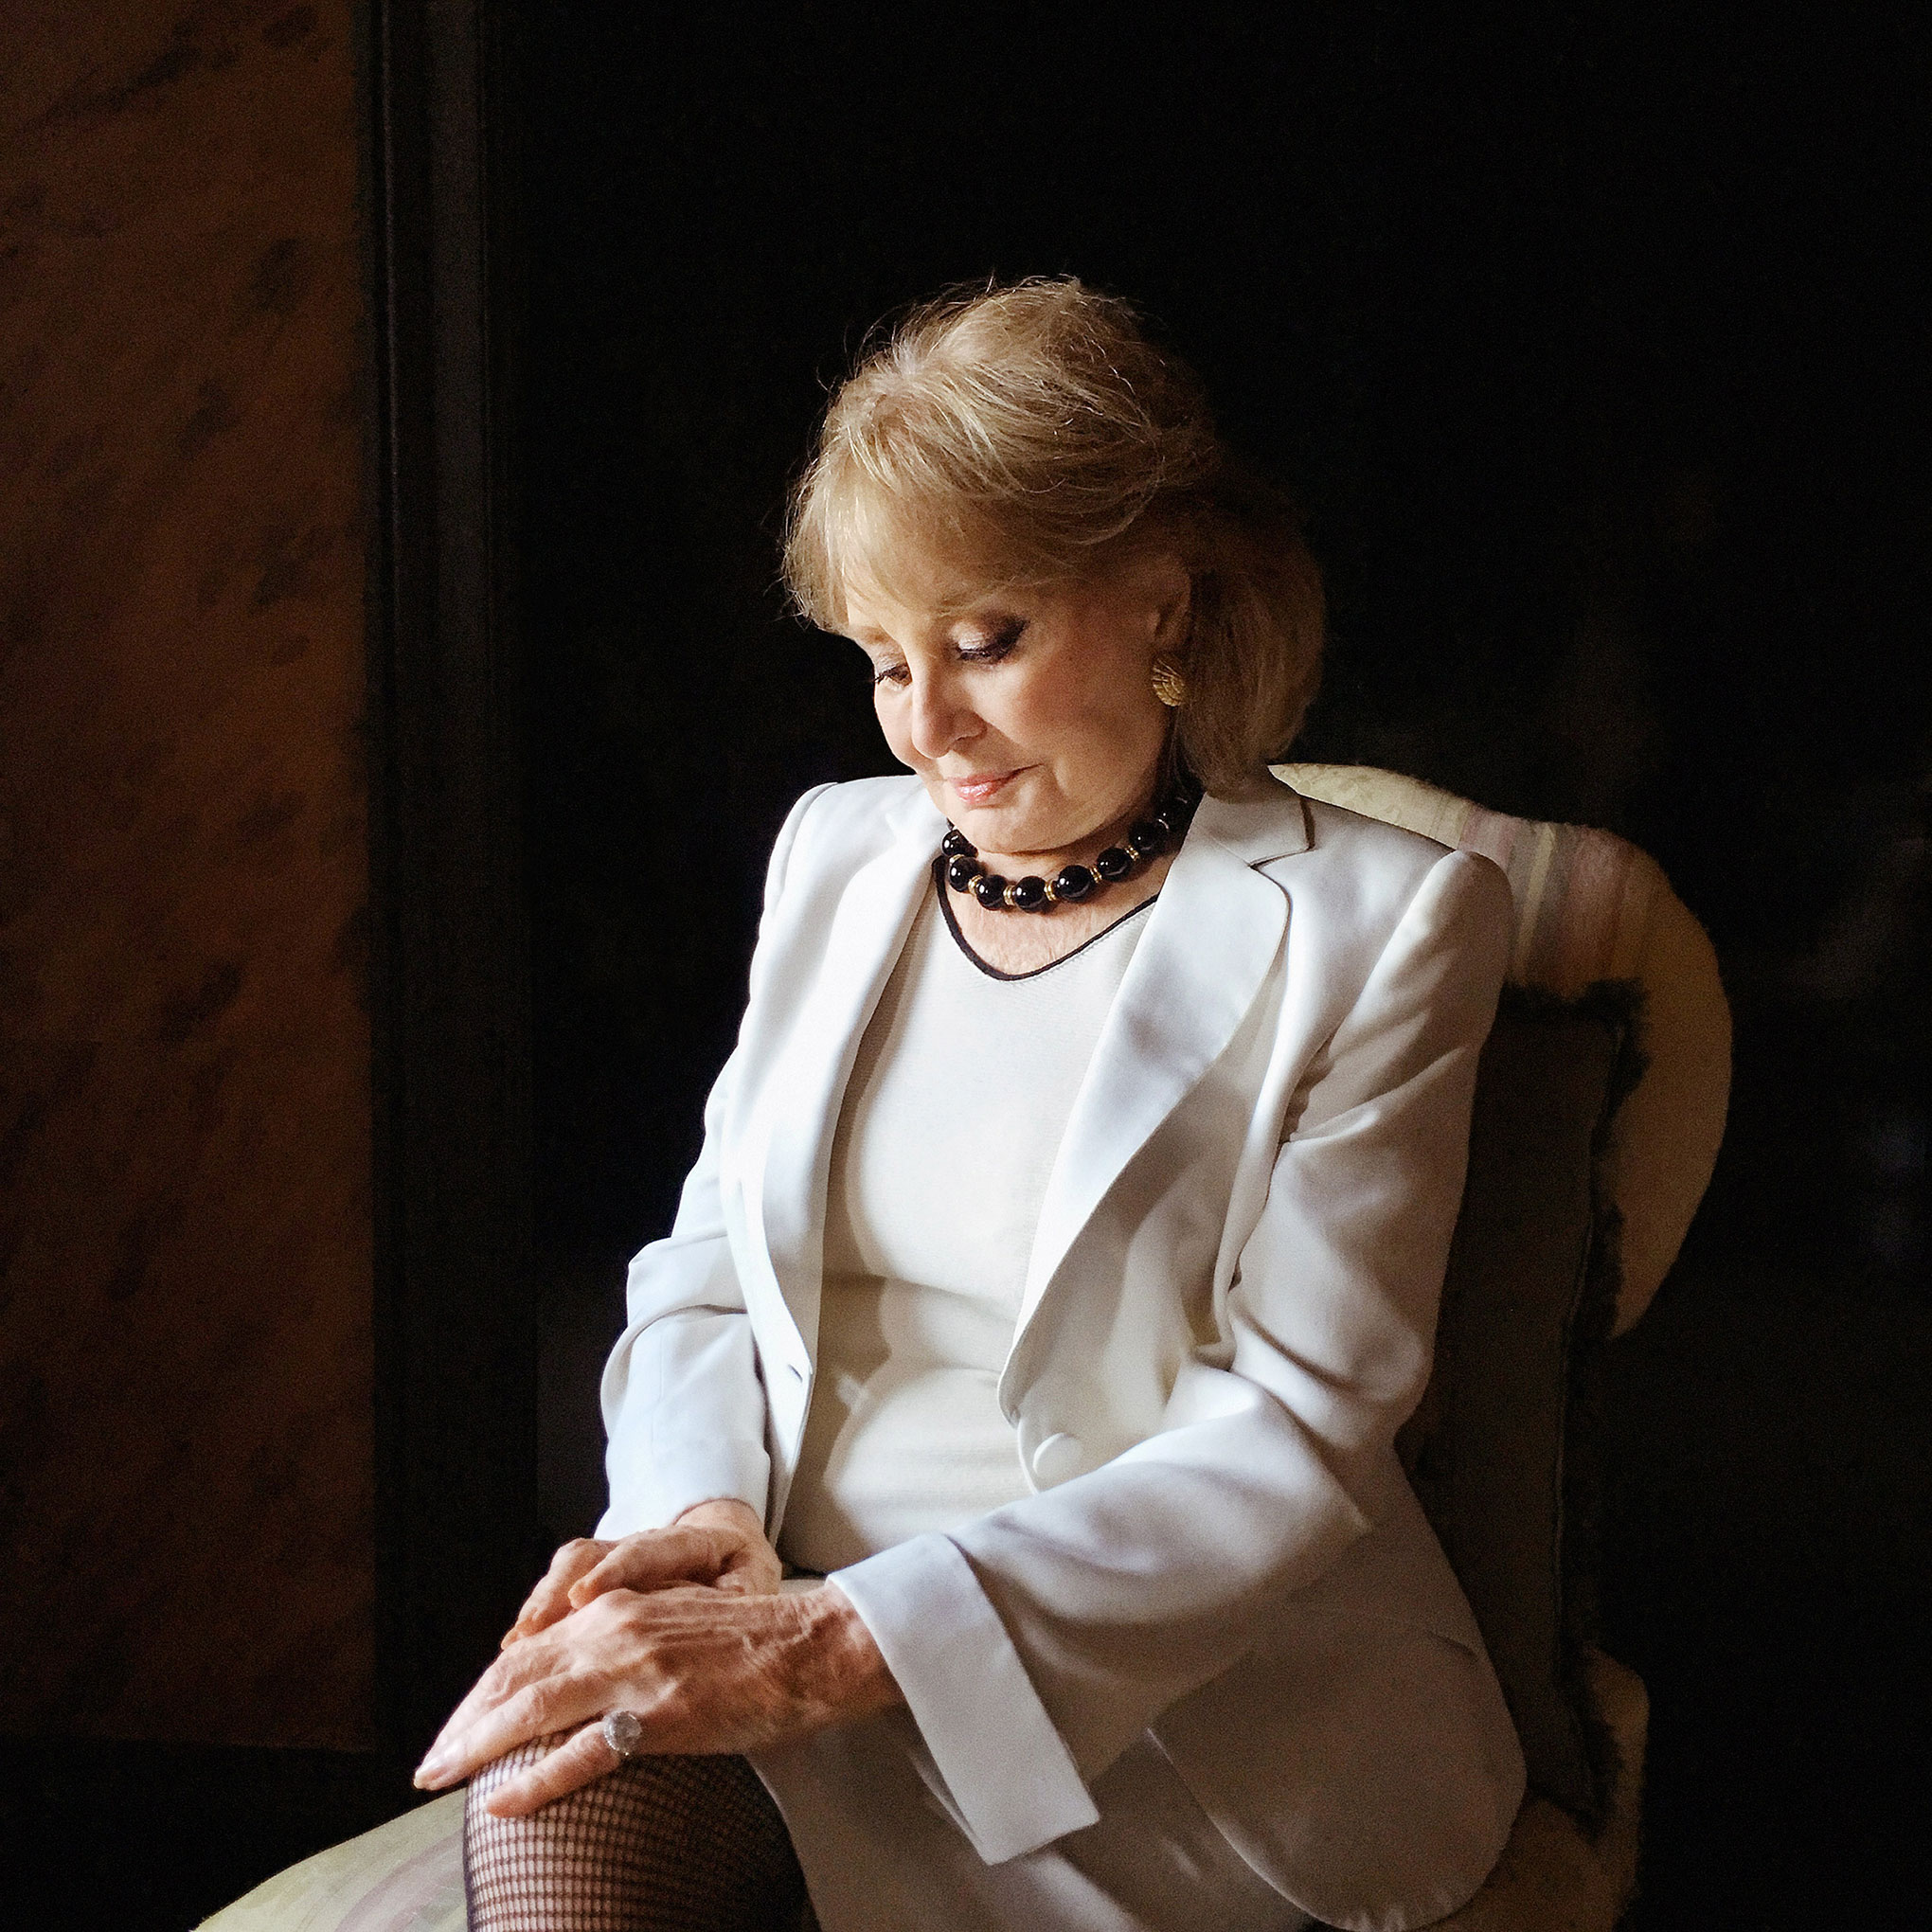 Barbara-Walters-time-firsts-luisa-dorr-2017